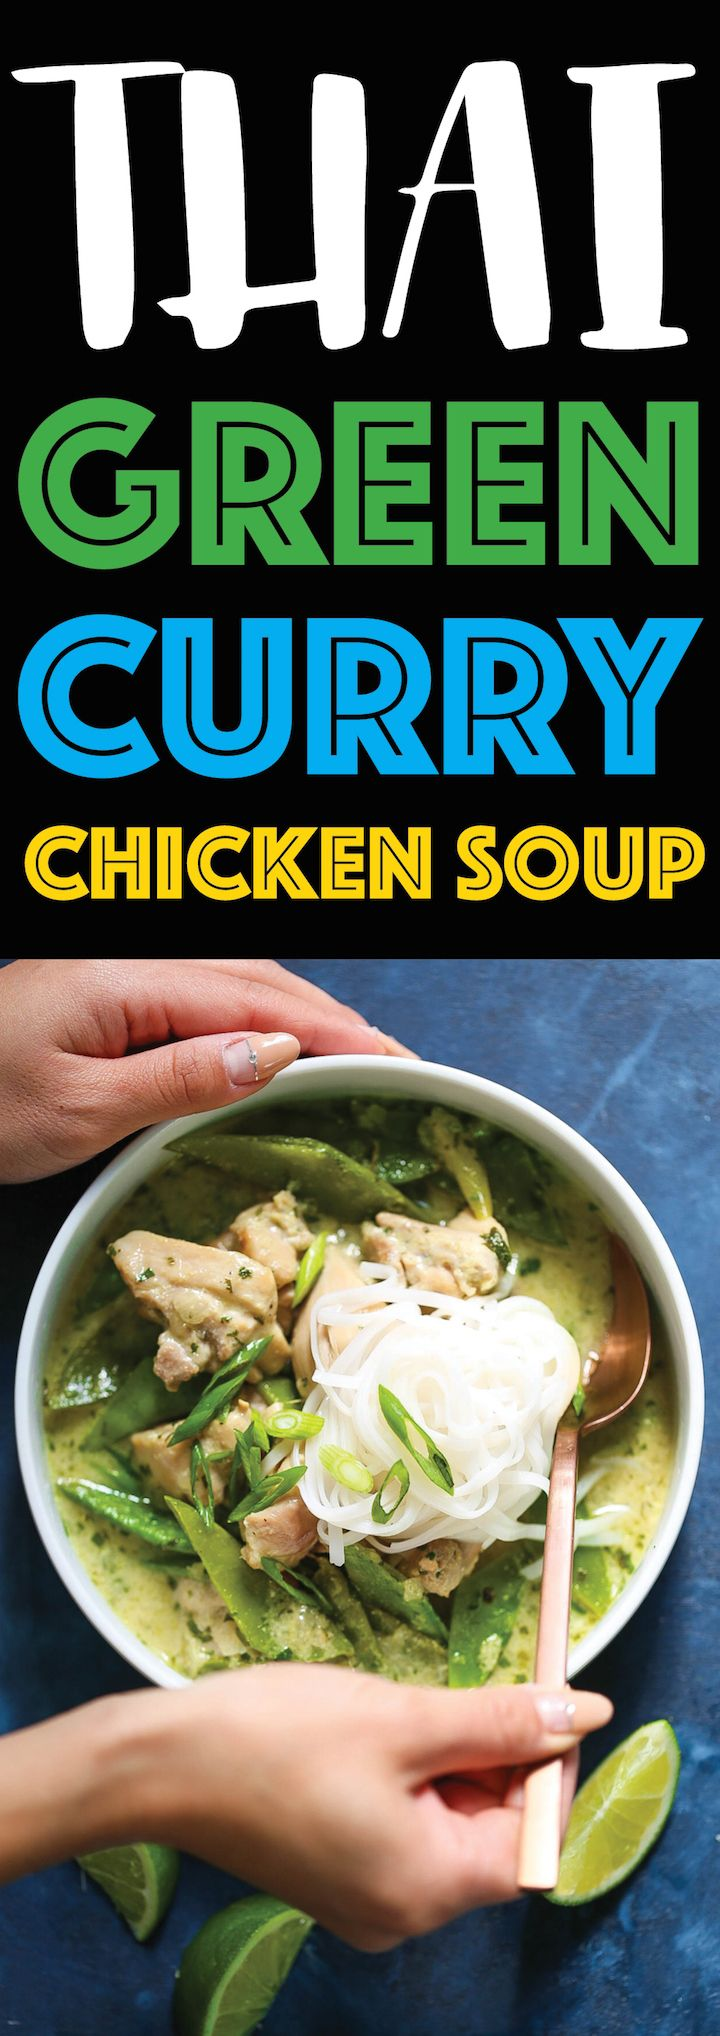 Thai Green Curry Chicken Soup - Everyone's favorite Thai green curry can be made right at home into the coziest, most comforting chicken soup ever! It is so easy to make with easy-to-find ingredients, loaded with tender chicken bites, ginger, coconut milk, snow peas, lime juice, cilantro and rice noodles!